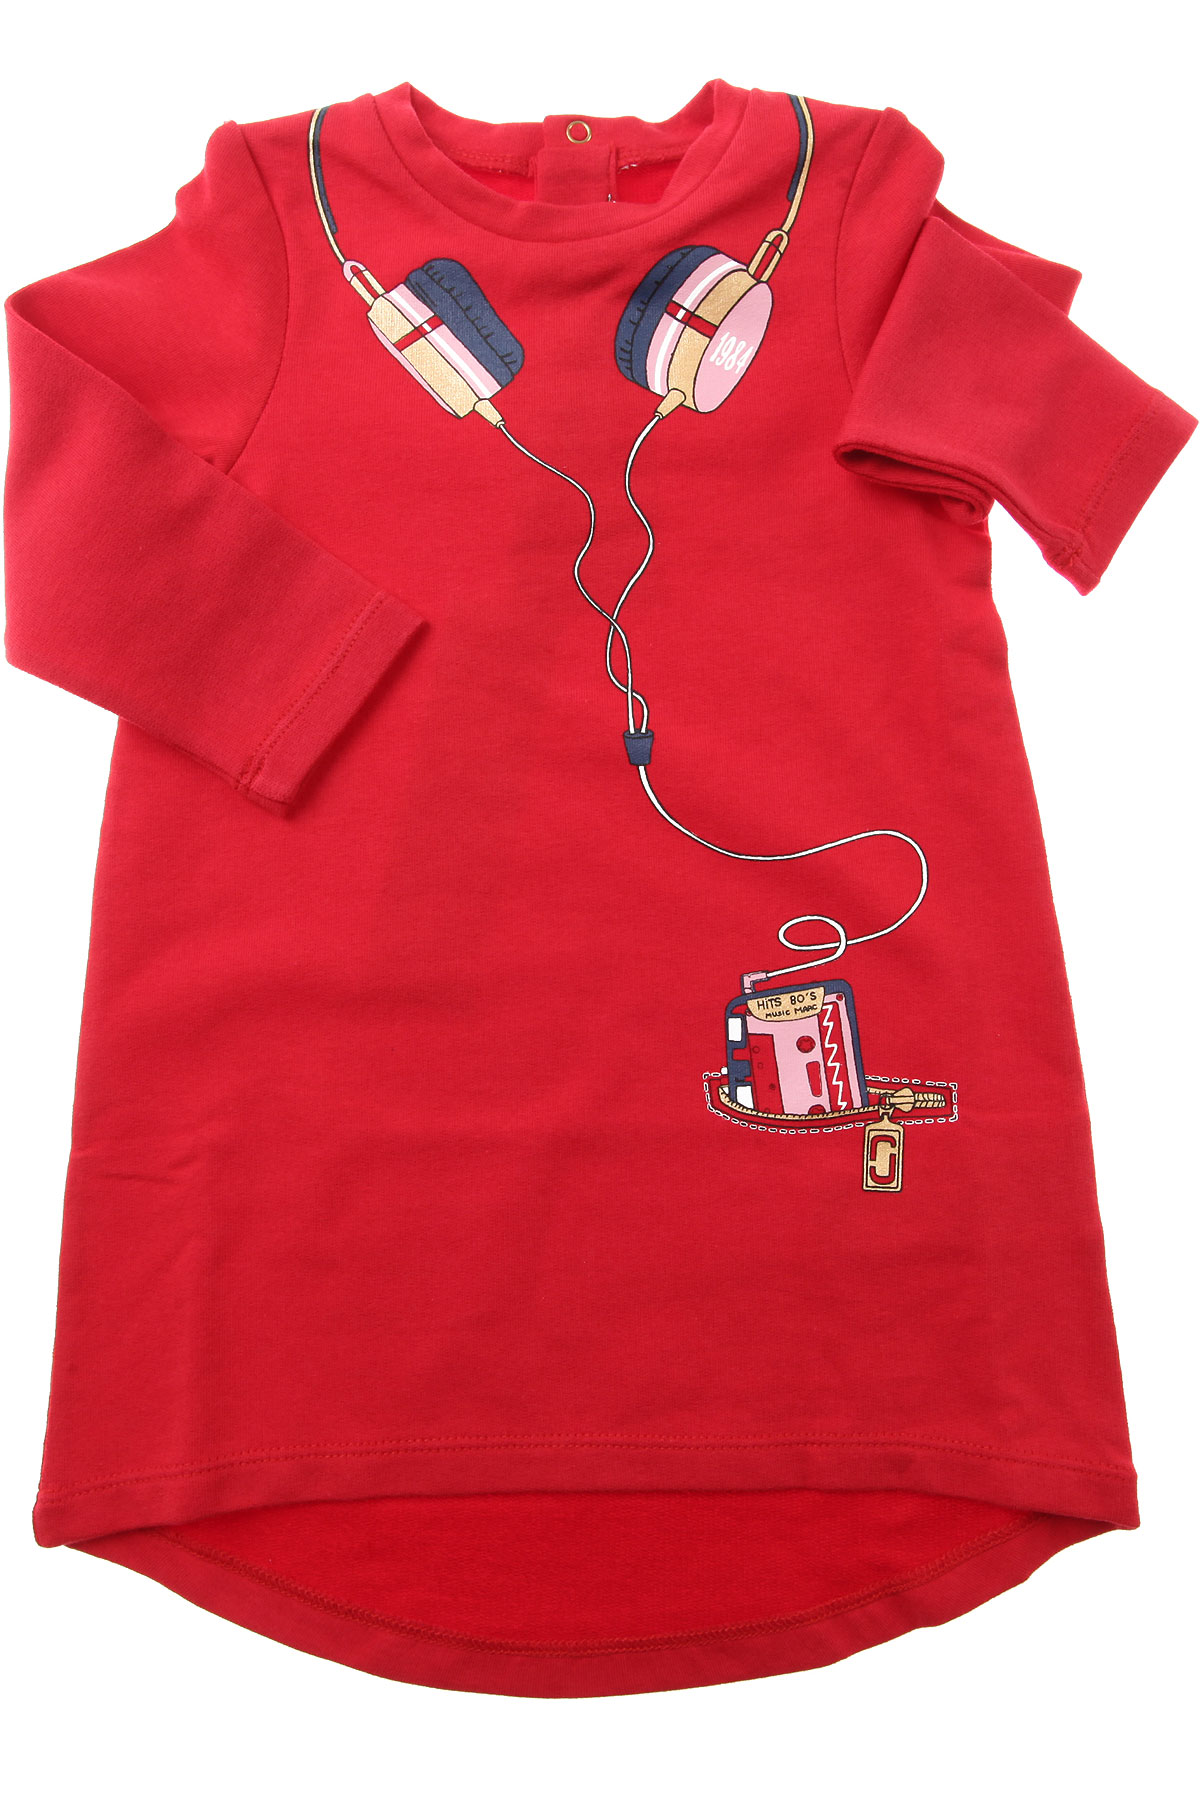 Image of Marc Jacobs Baby Dress for Girls, Red, Cotton, 2017, 12M 18M 2Y 6M 9M